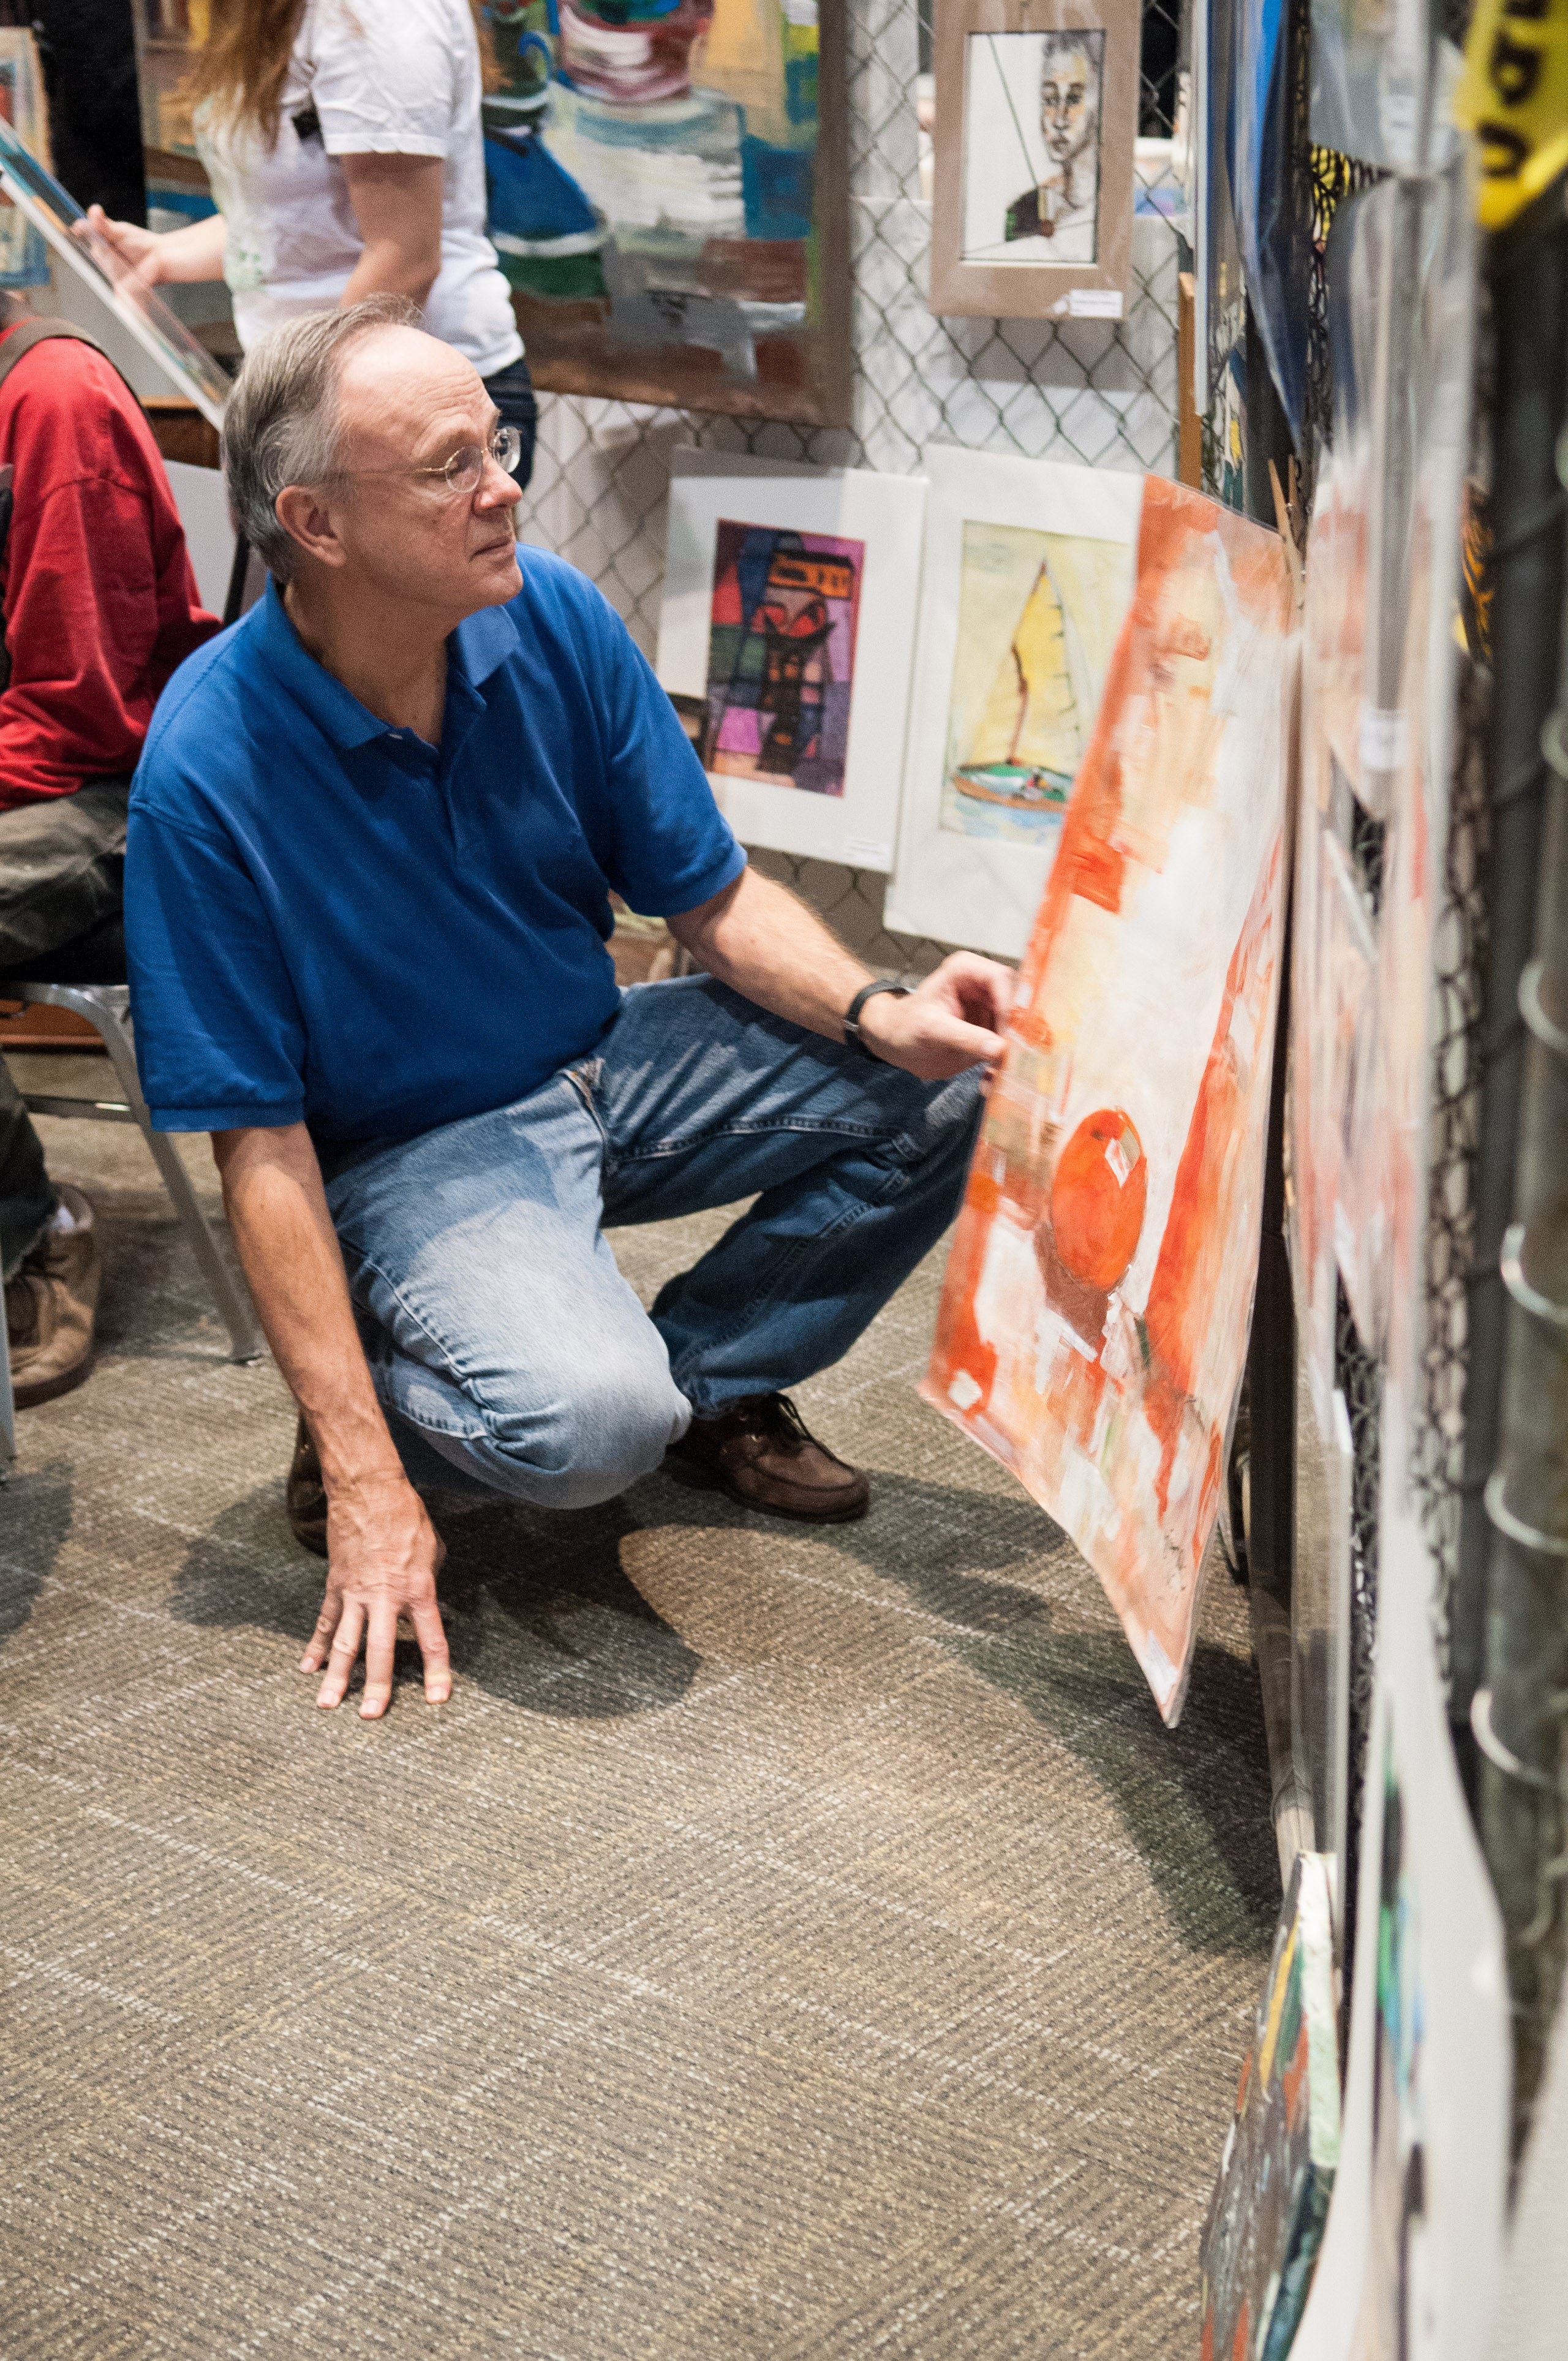 A man looks at an art piece for sale at the Austin Convention Center. Photo by Skylar Isdale